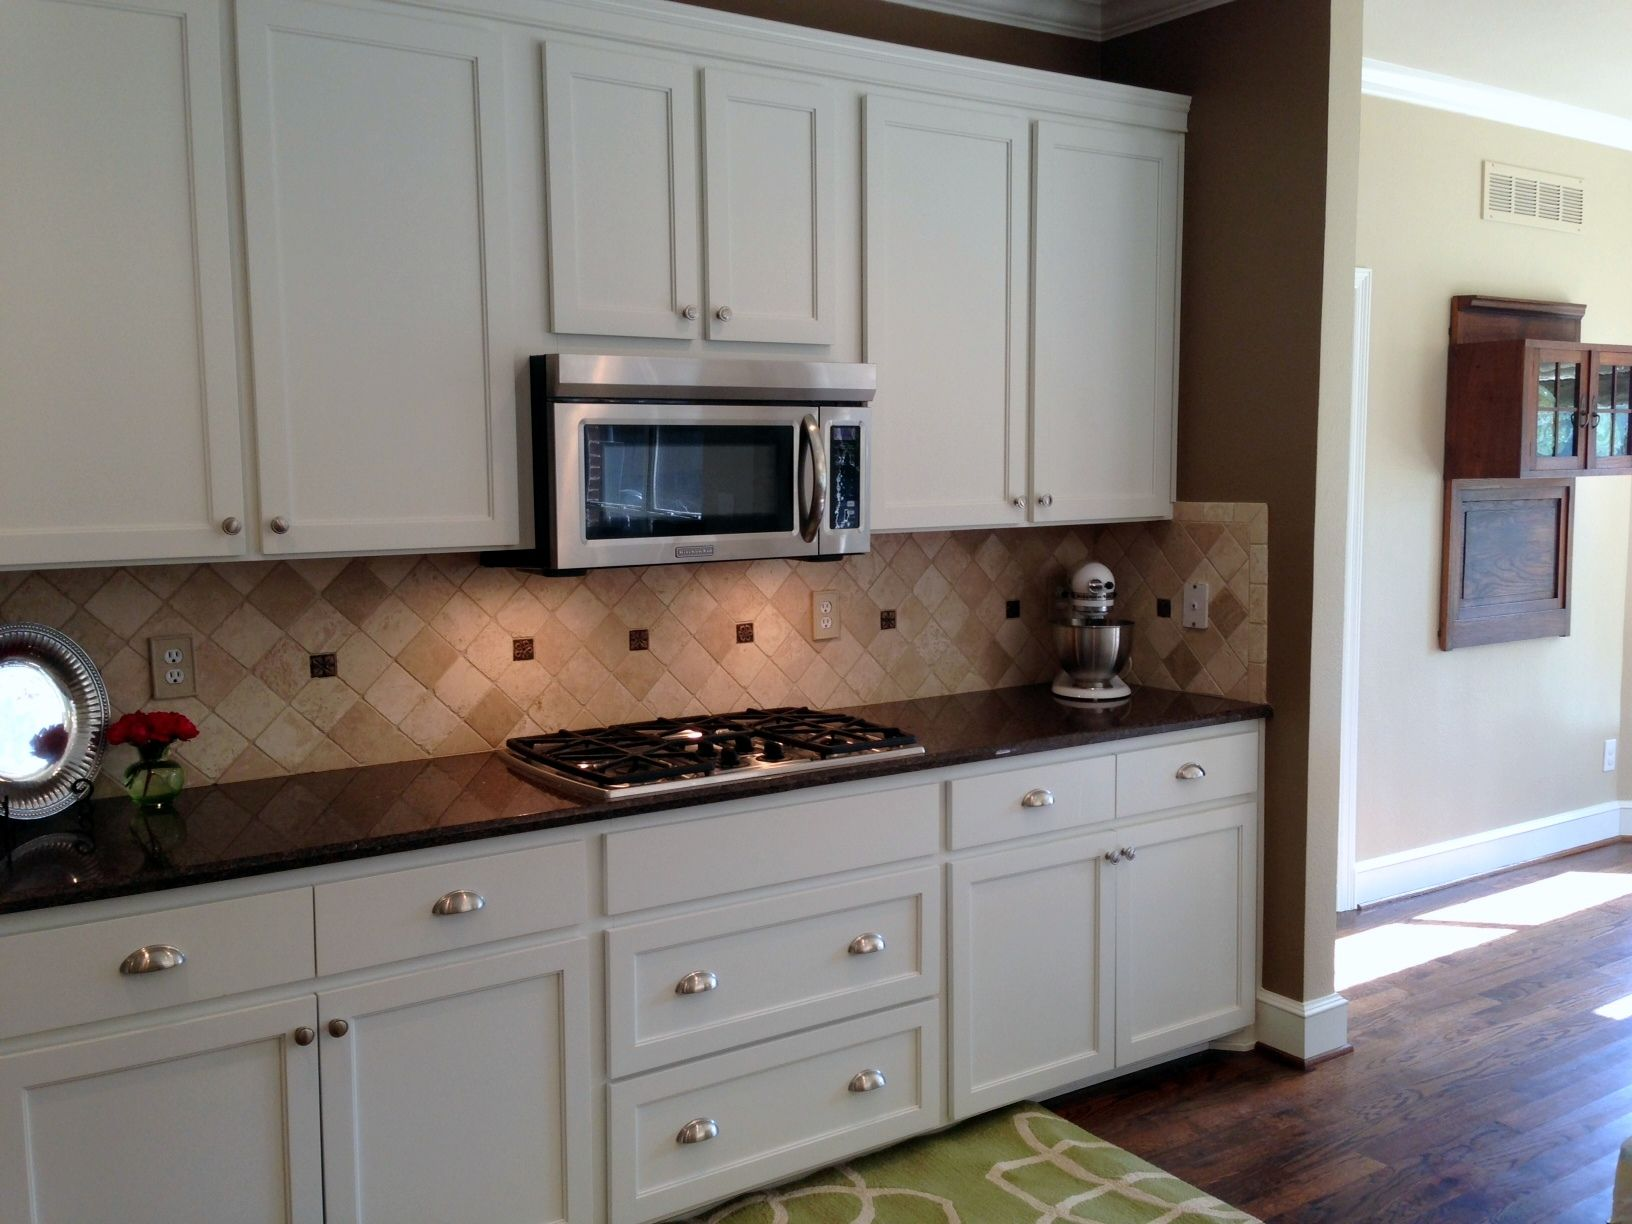 Modern Kitchen Remodel Before And After sherwin williams alabaster cabinet | kitchen remodel: before